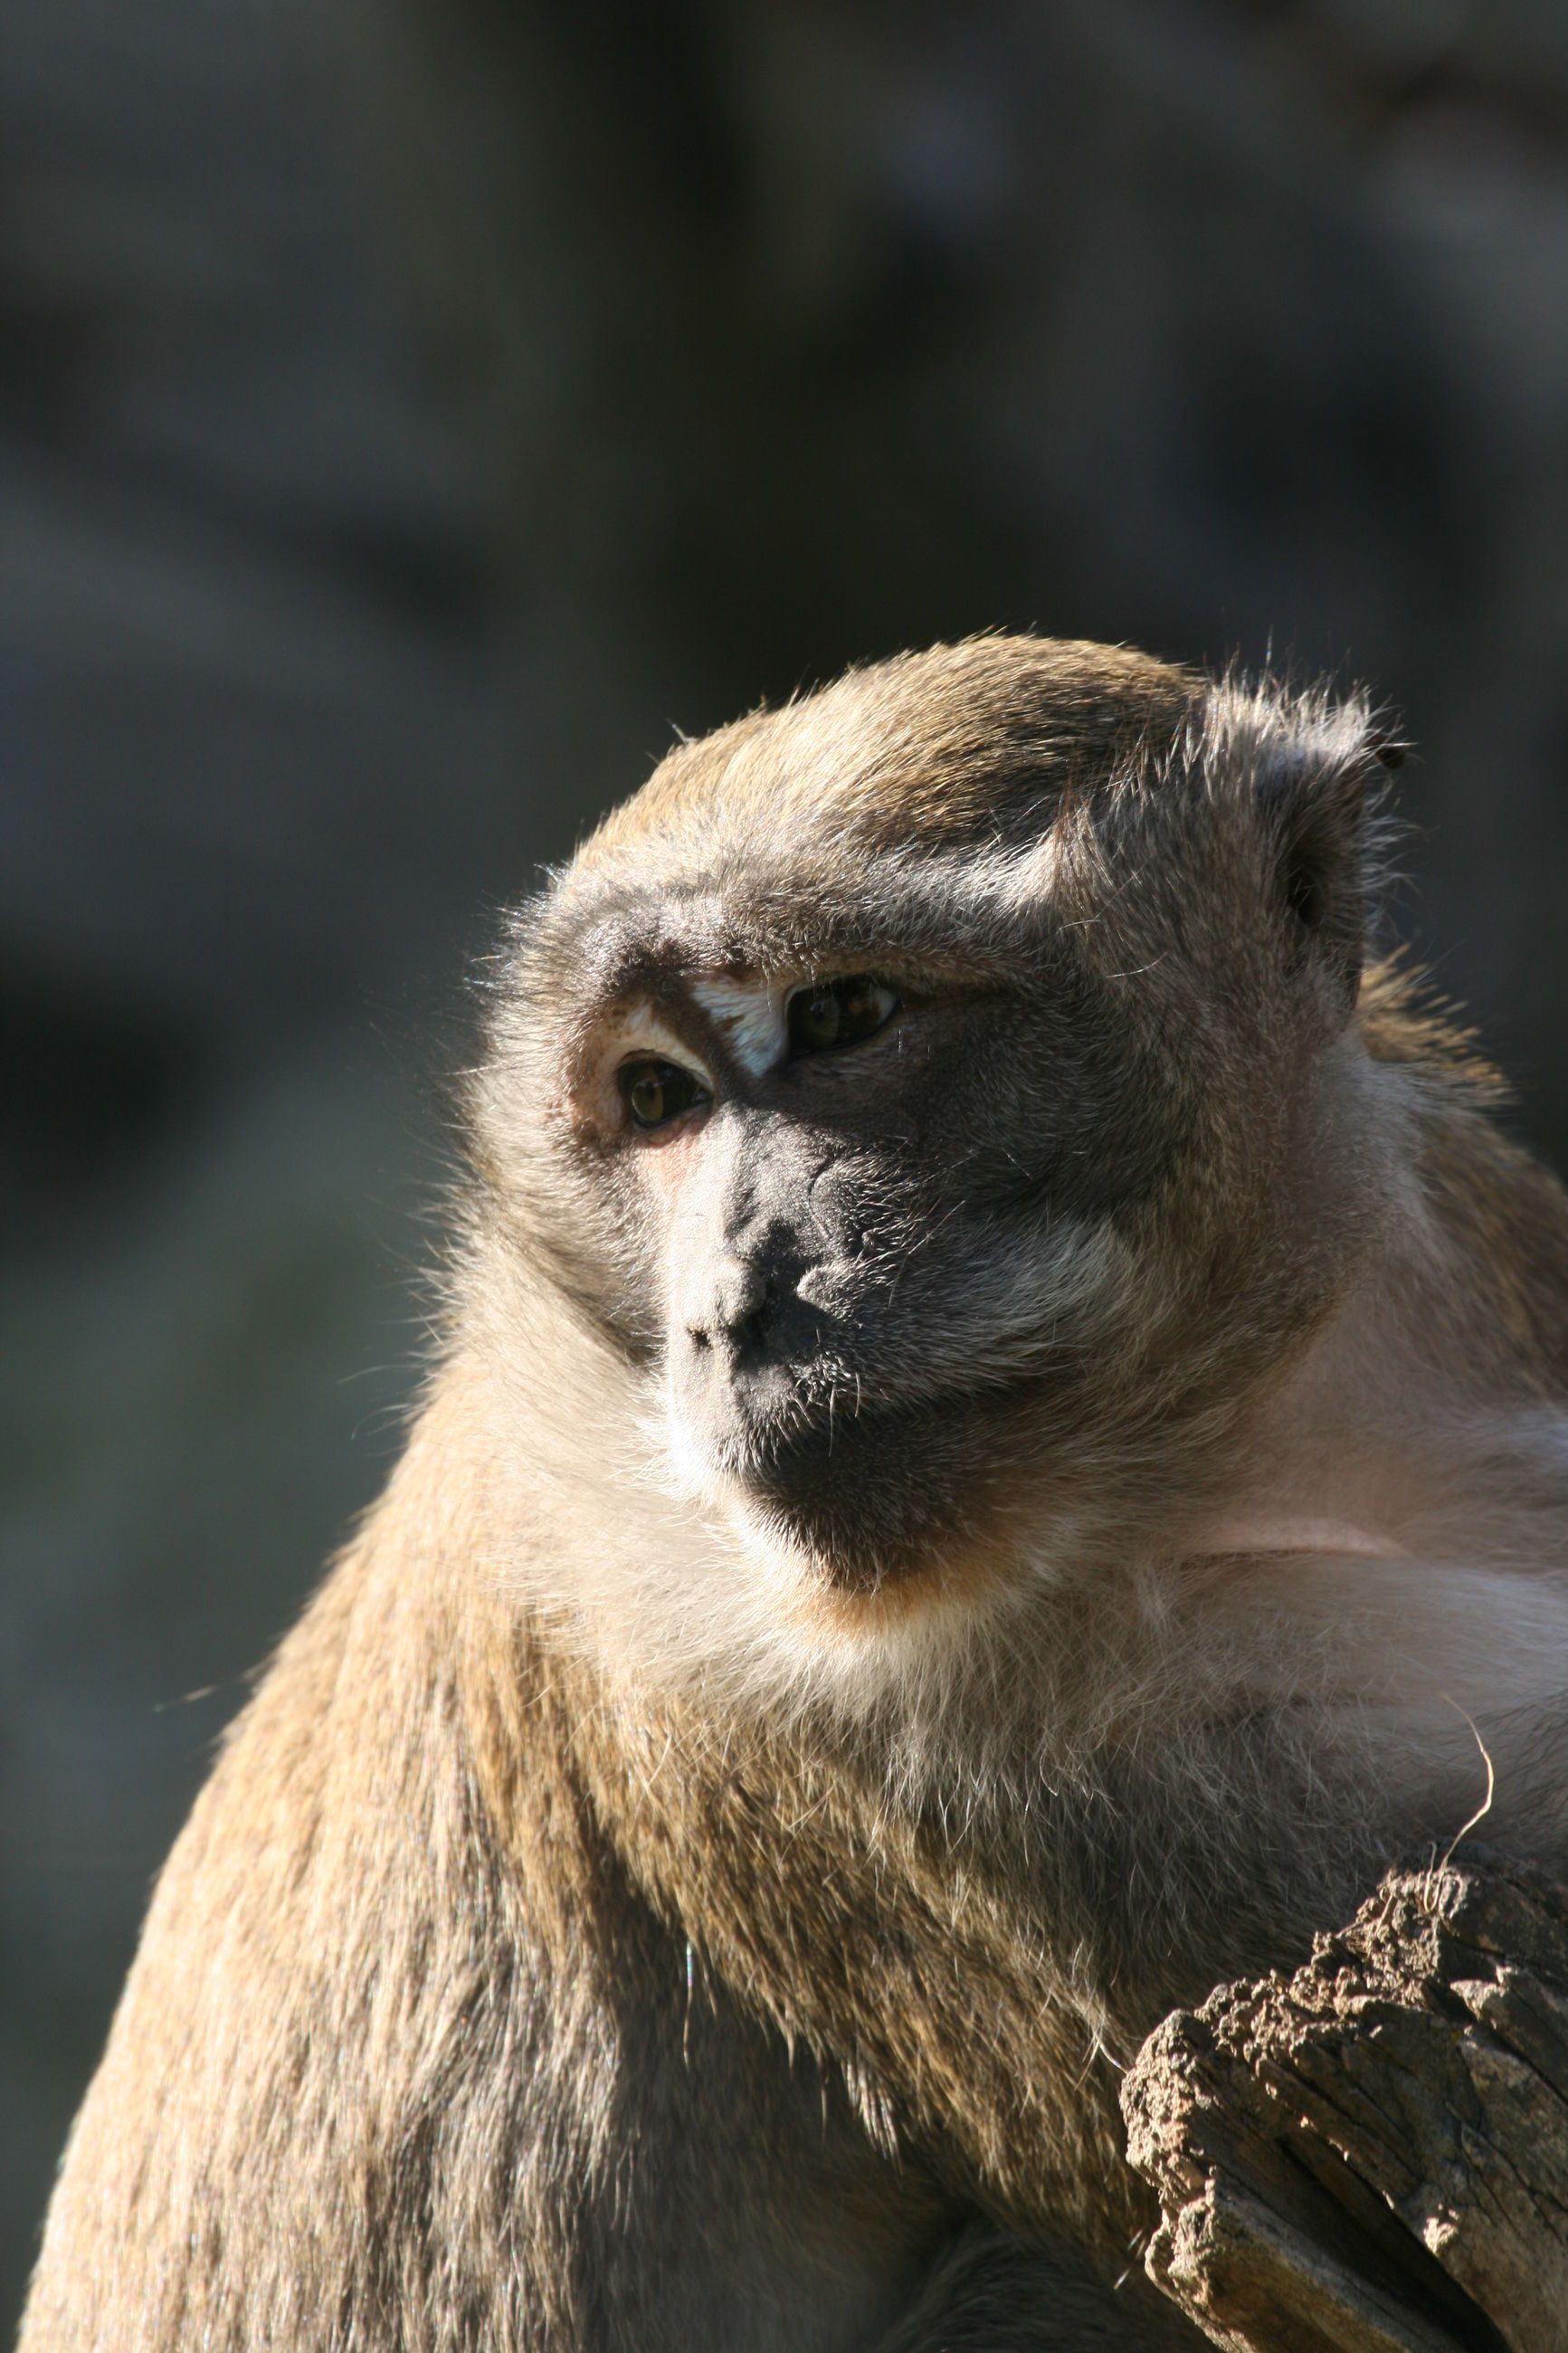 animal themes, animals in the wild, animal wildlife, mammal, no people, primate, nature, zoo, outdoors, one animal, day, close-up, baboon, monkey